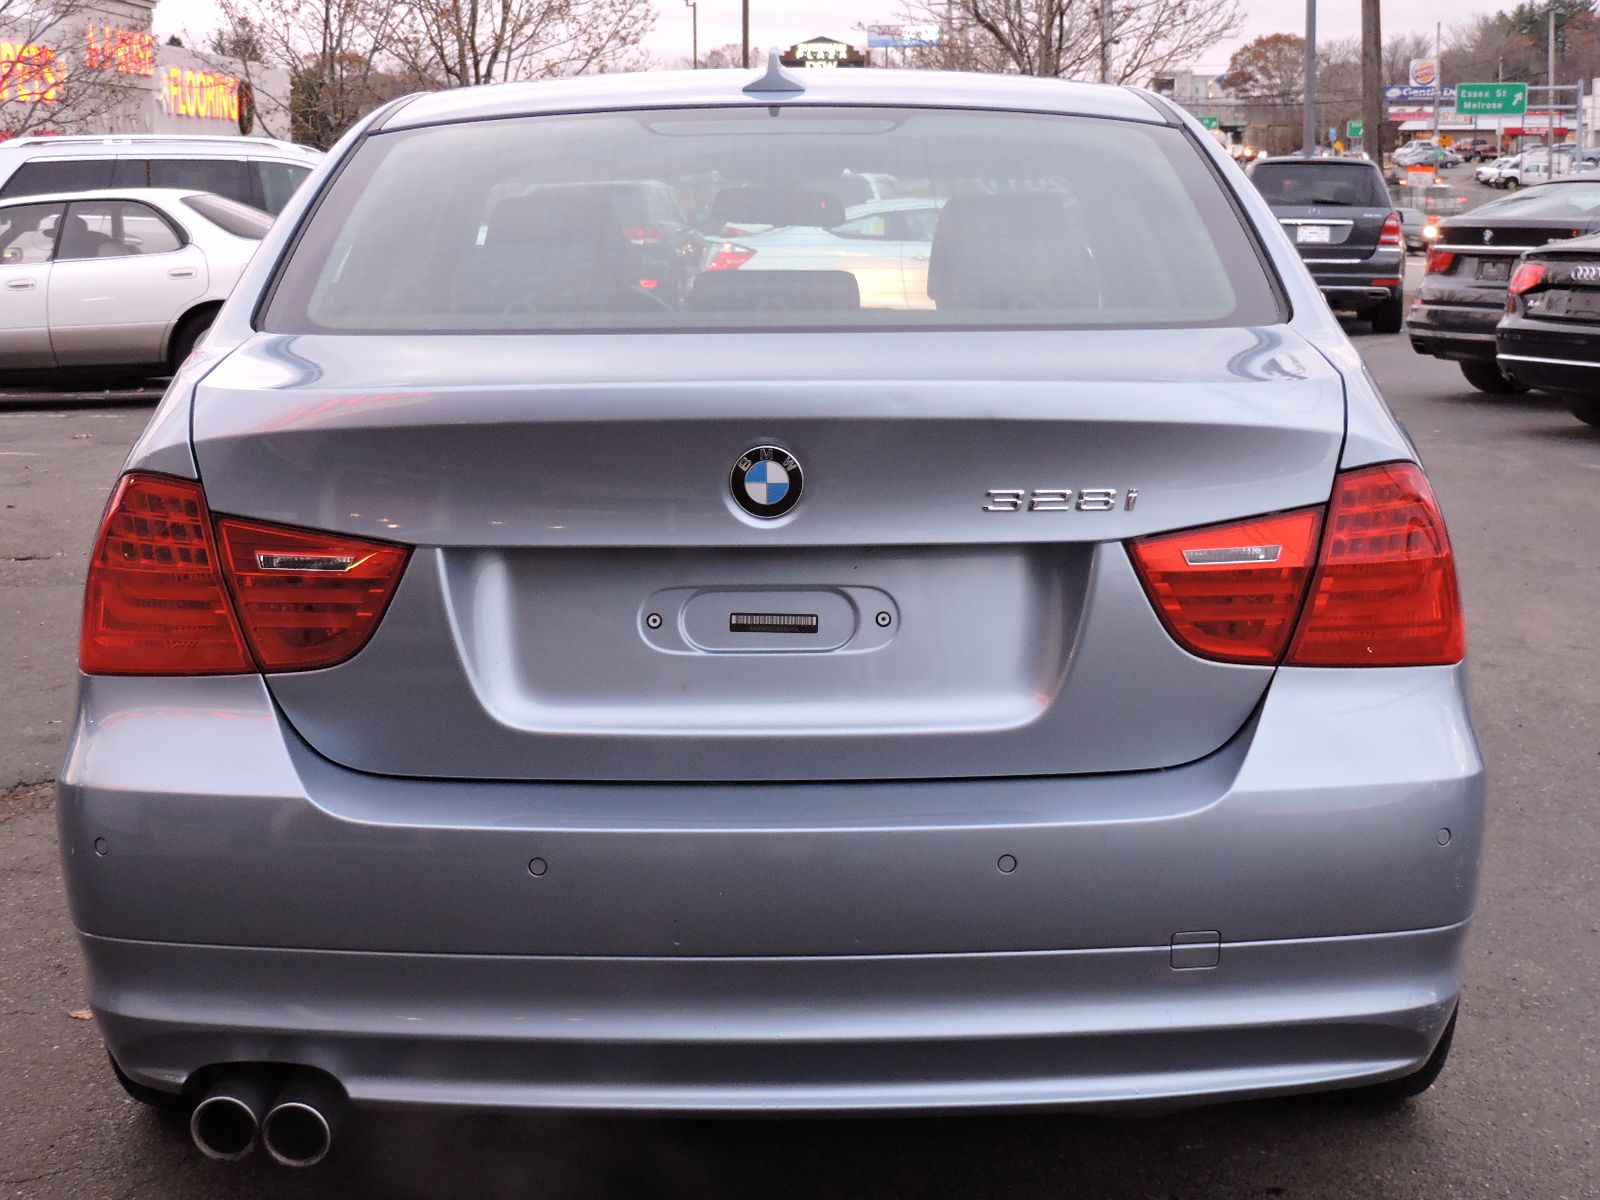 2011 BMW 3 Series xDrive - All Wheel Drive - Navigation - 6 Speed